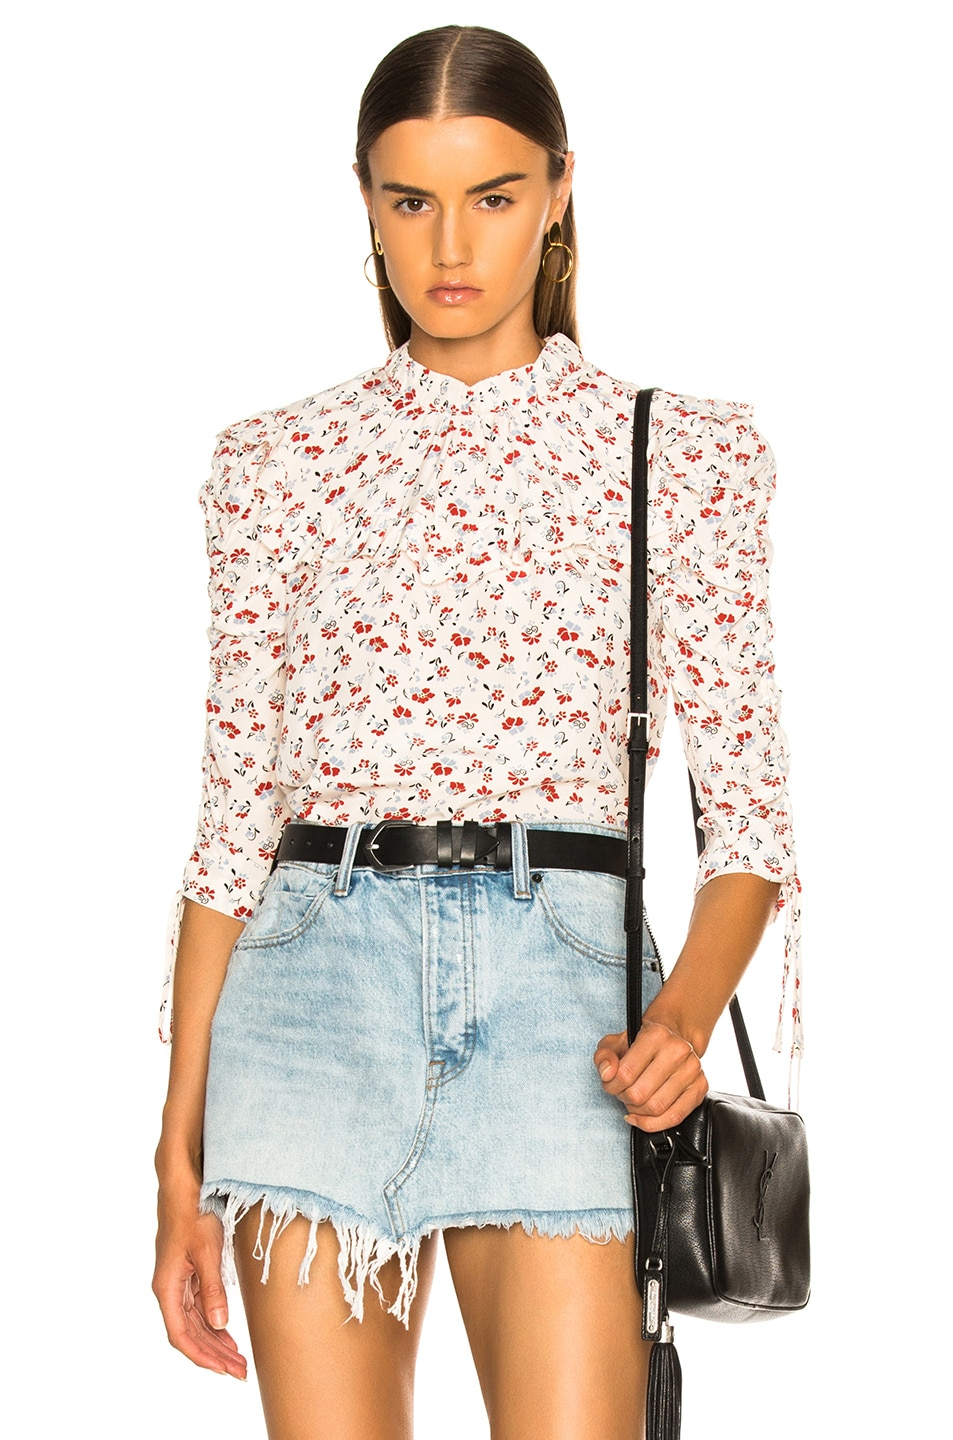 e7a26a2b57ce9d Image 1 of Veronica Beard Howell Blouse in White Multi